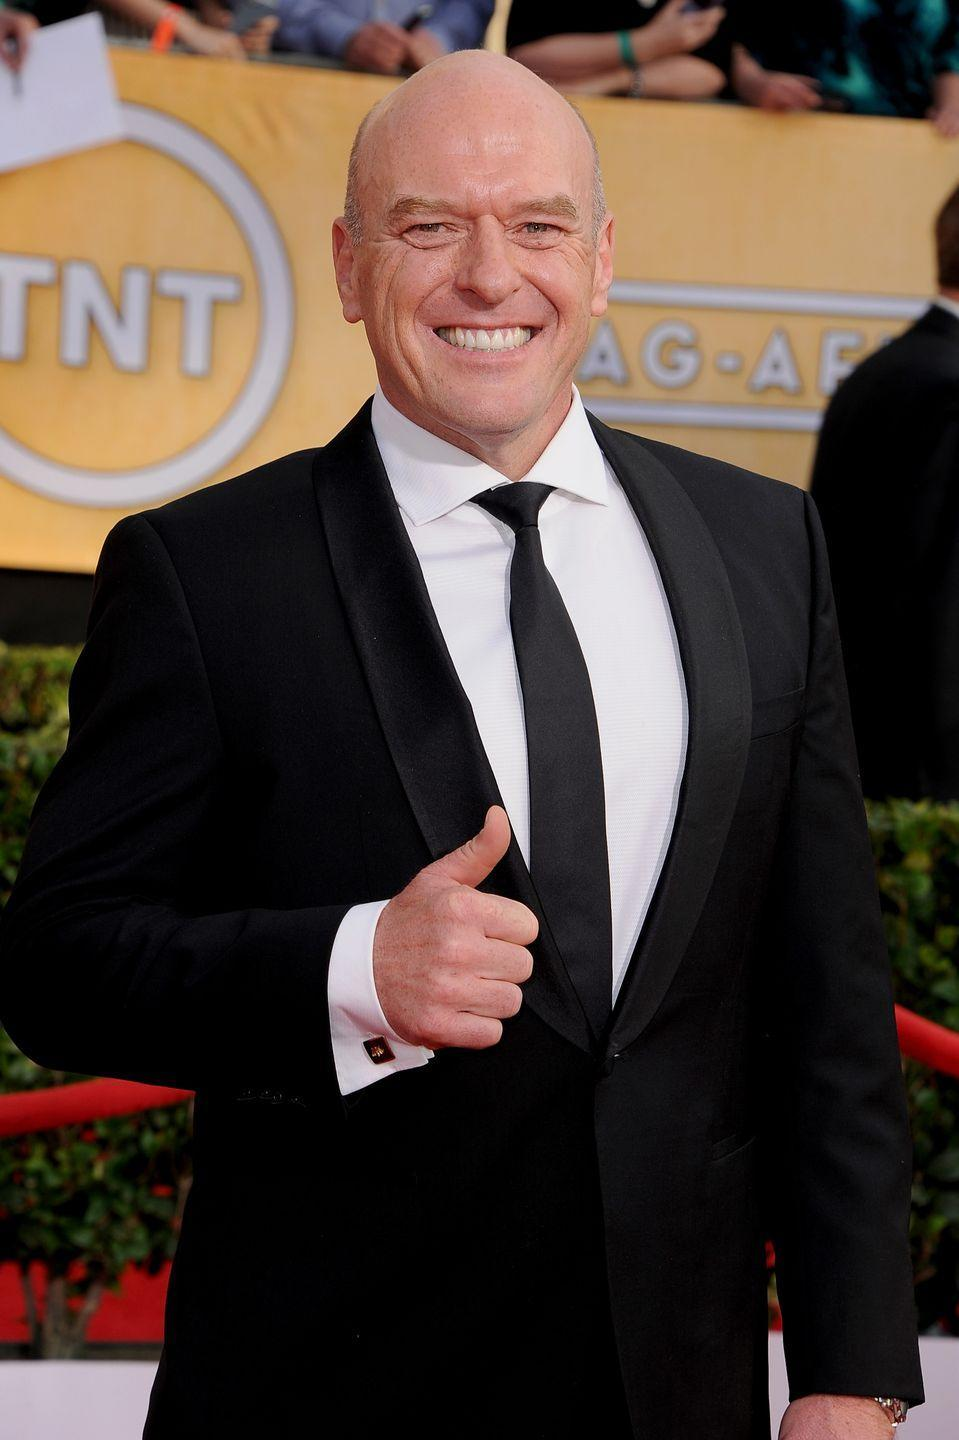 "<p>Although fans weren't thrilled with Hank Schrader's death, it was apparently Dean Norris's idea. ""I called [series creator] Vince [Gilligan] and I said, 'Hey man, maybe Hank should die in the first eight. Wouldn't that be a great ending?,'"" Norris told <a href=""https://nationalpost.com/entertainment/television/breaking-bads-dean-norris-to-series-creator-please-kill-my-character"" rel=""nofollow noopener"" target=""_blank"" data-ylk=""slk:The National Post"" class=""link rapid-noclick-resp"">The National Post</a>. Apparently, the actor was happy to leave, as the show's split season 5 (two sets of eight episodes) was going to conflict with other projects he had lined up. </p>"